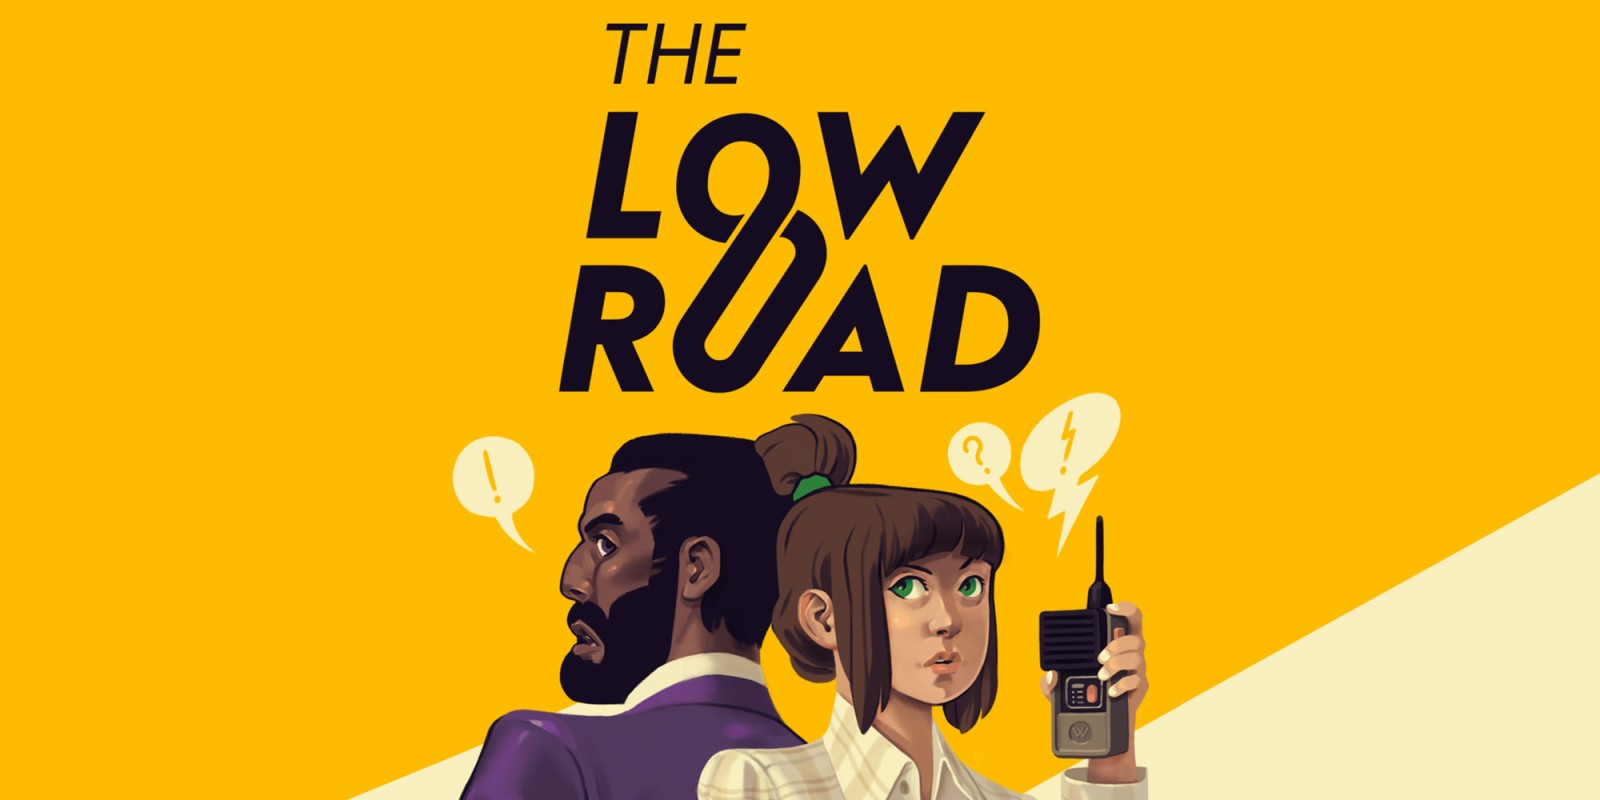 The Low Road Image 1